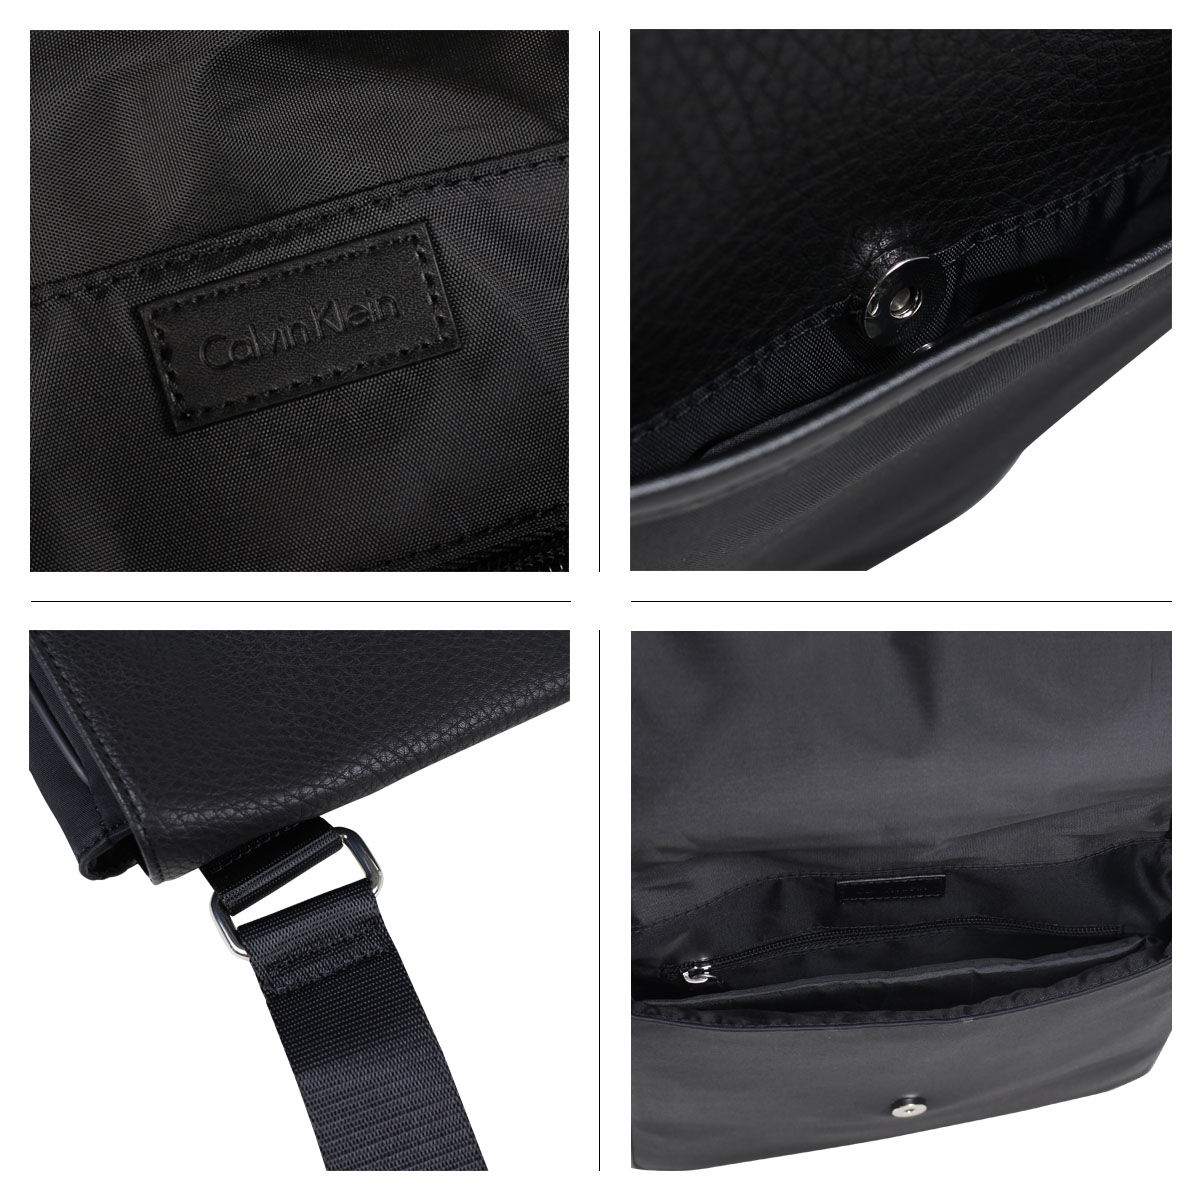 Calvin Klein COTTON NYLON REPORTER Calvin Klein bag men shoulder bag black  75026796  2 19 Shinnyu load   182  161c6998c4